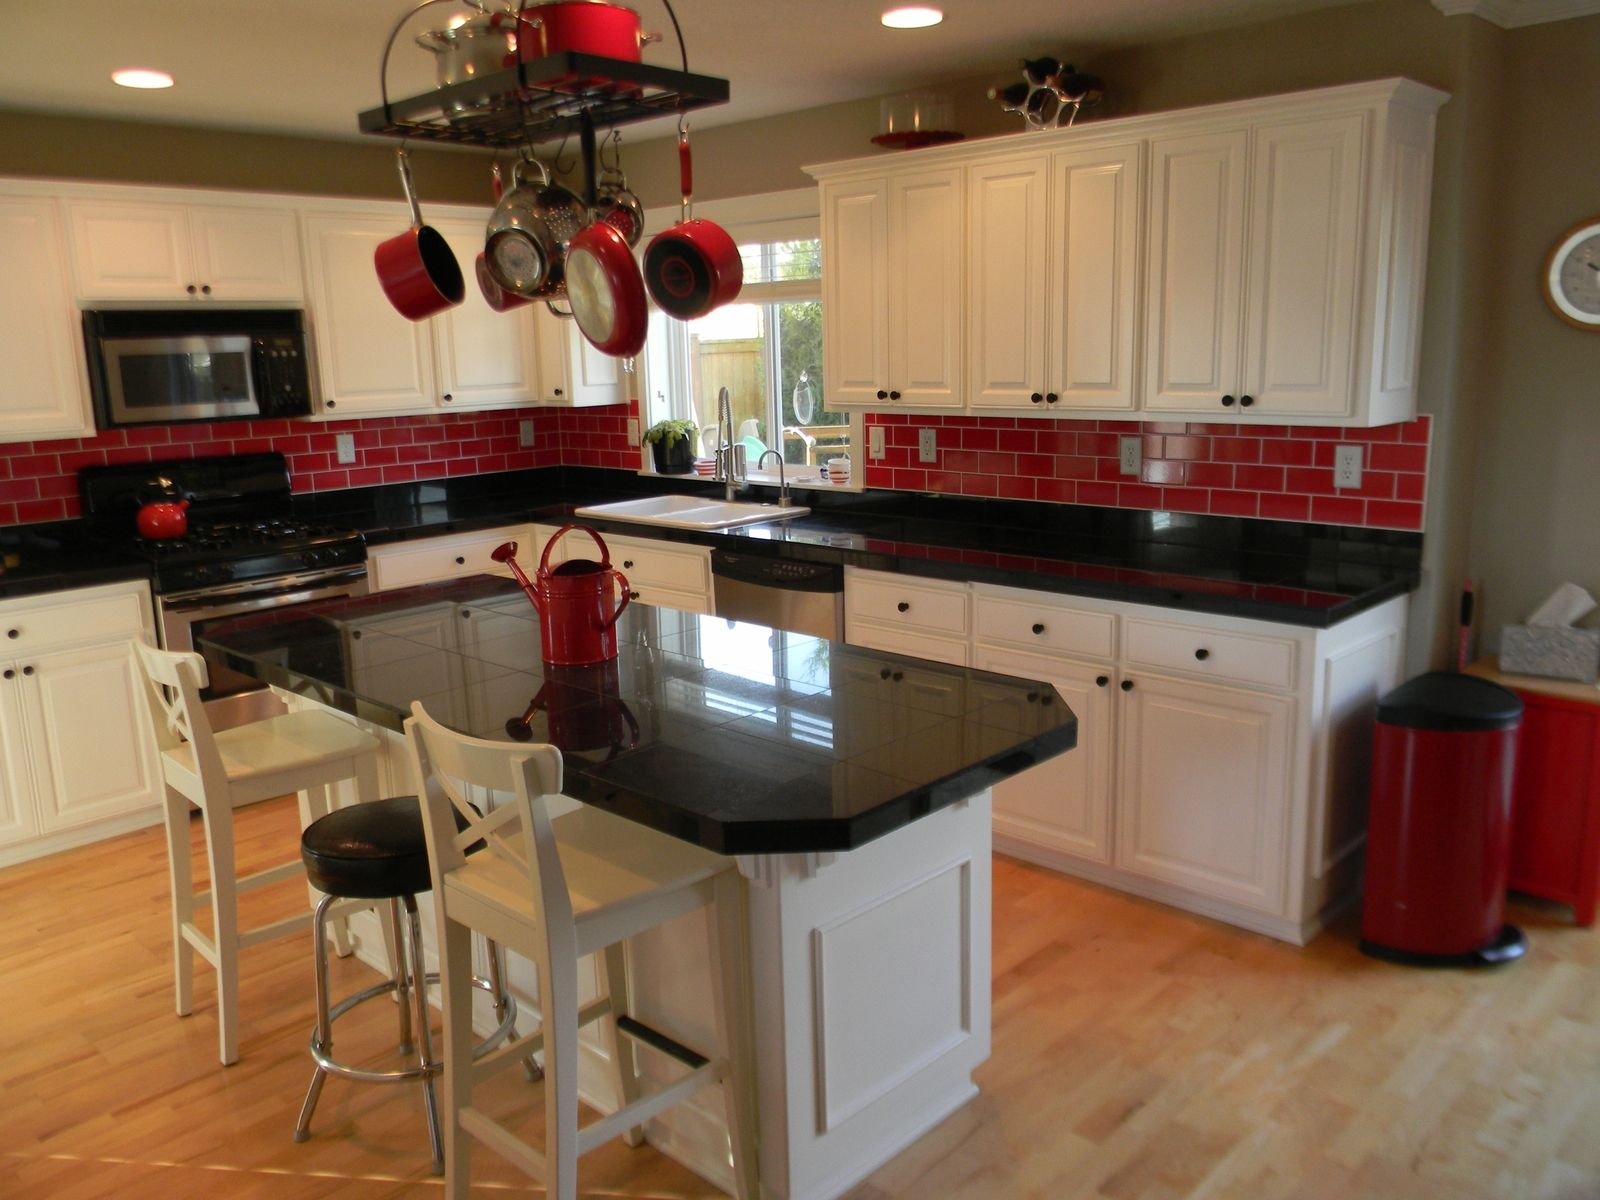 Think I Like This Red Backsplash Would Go Great With The Red Sink